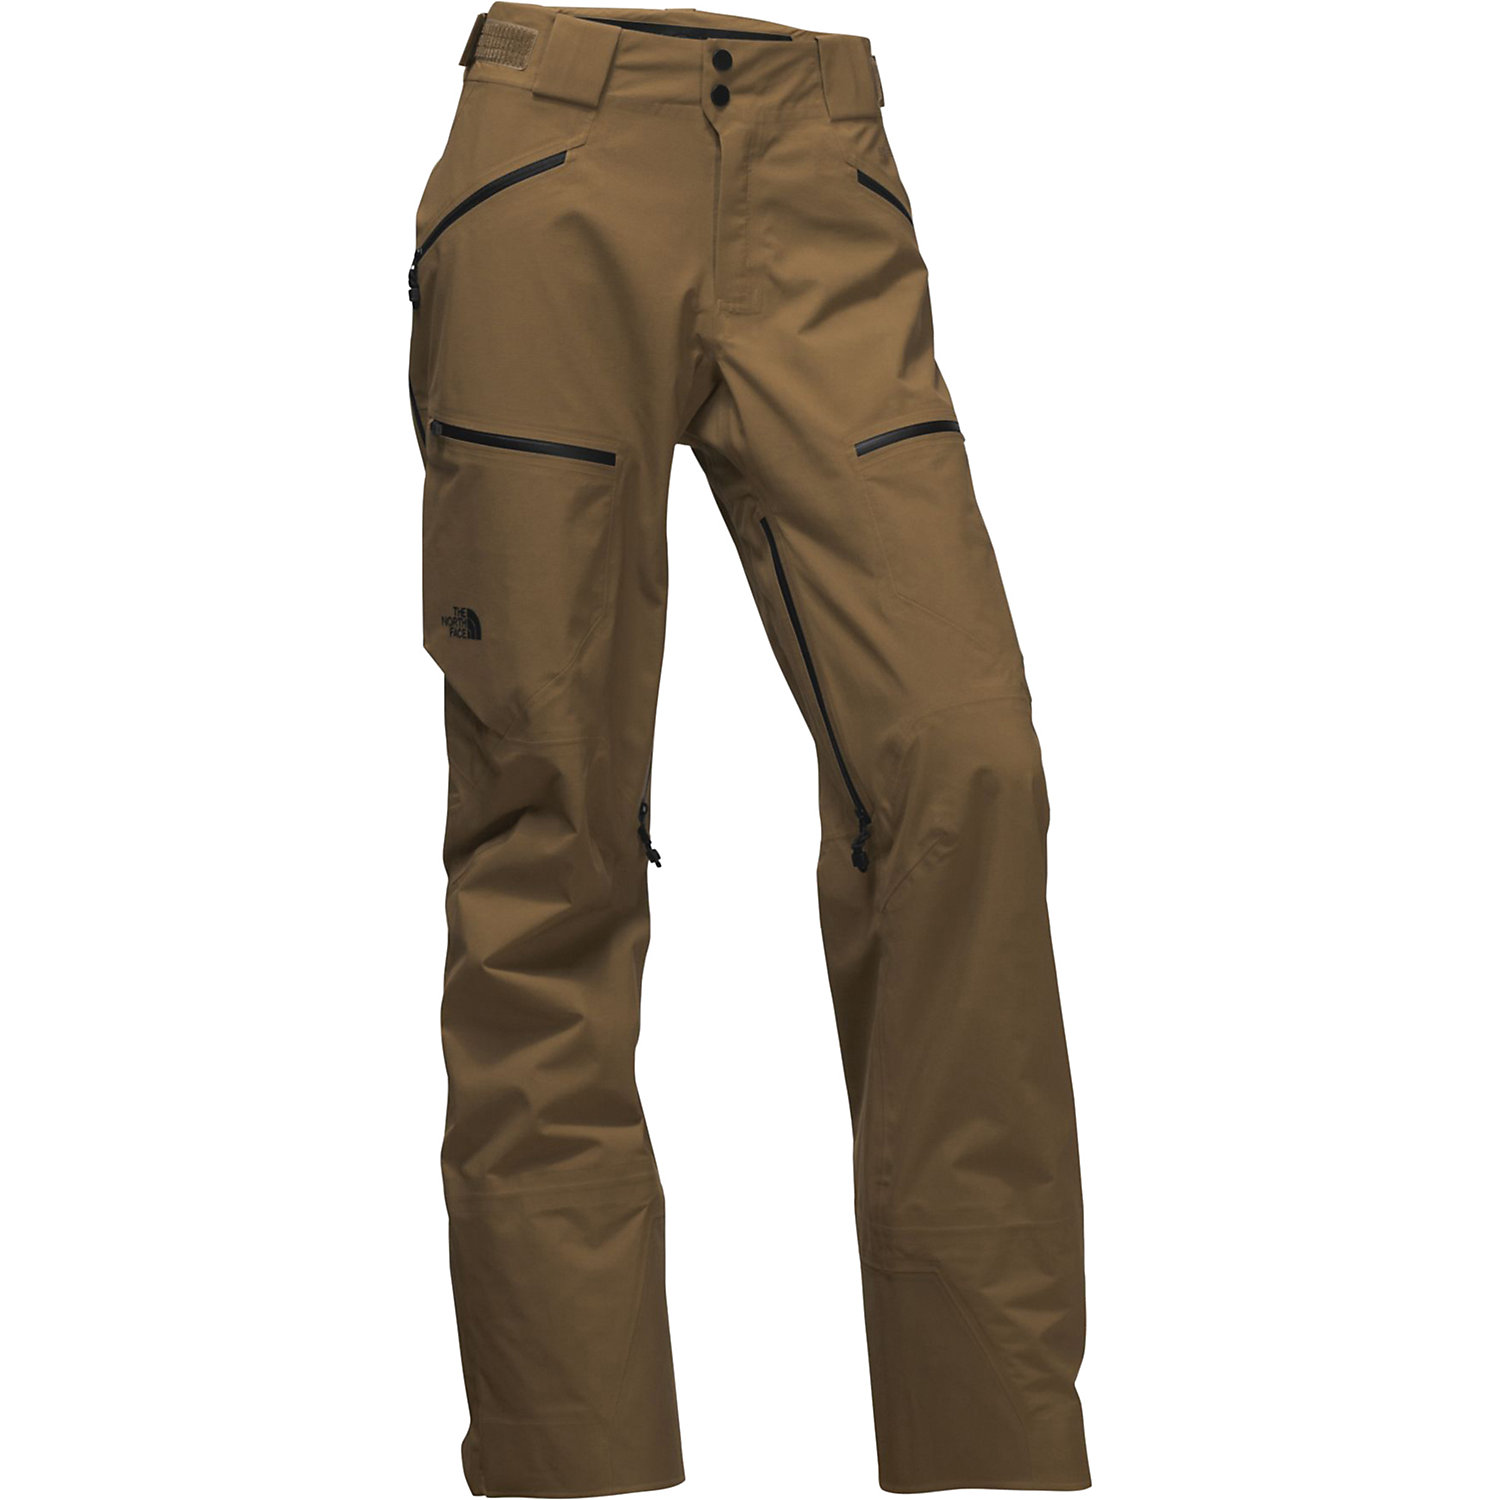 ee400c296 The North Face Steep Series Women's Purist Pant